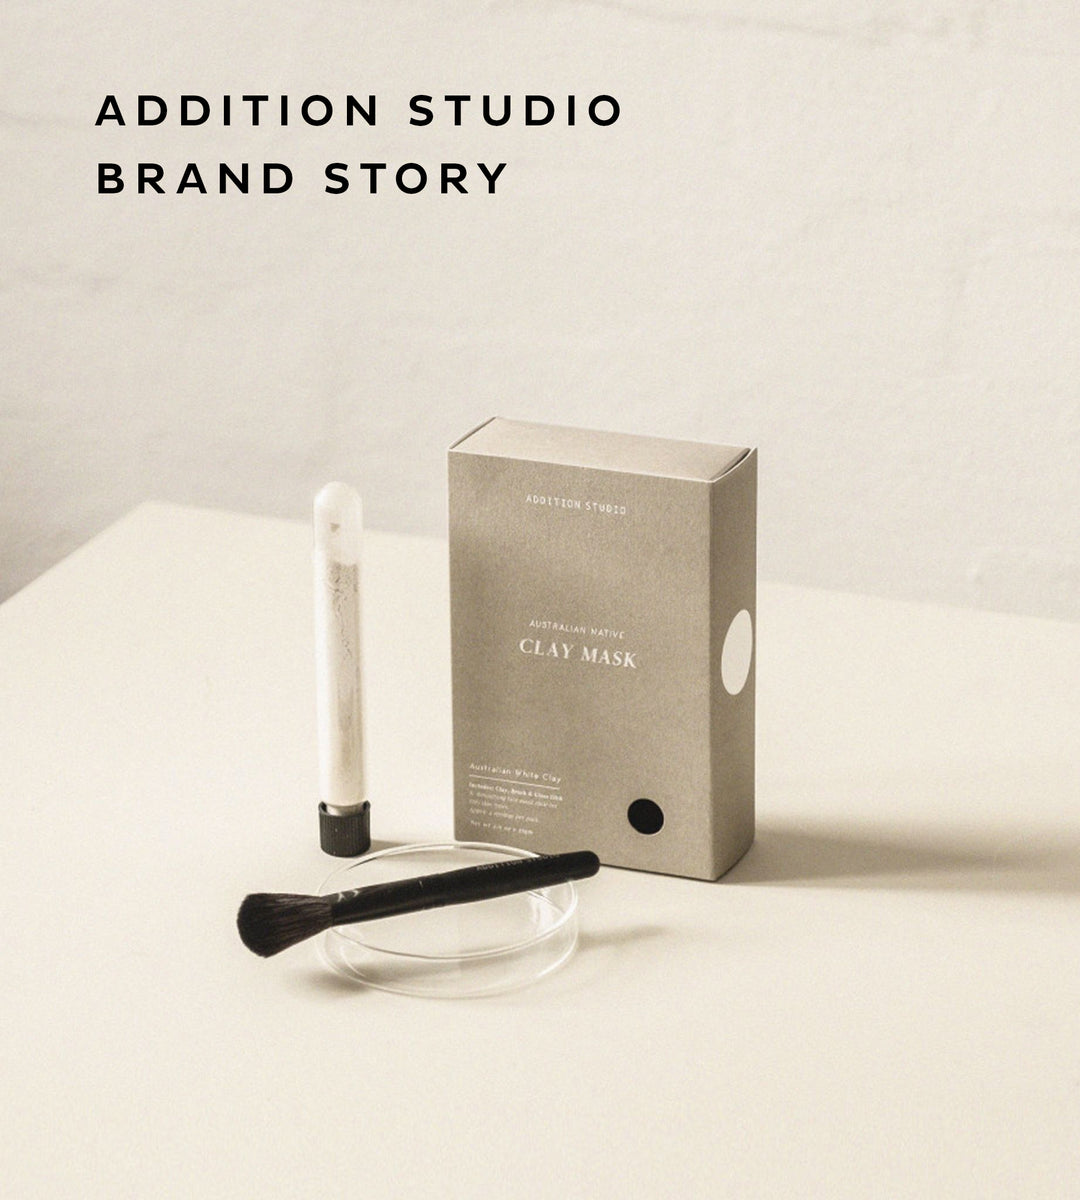 Addition Studio Brand Story